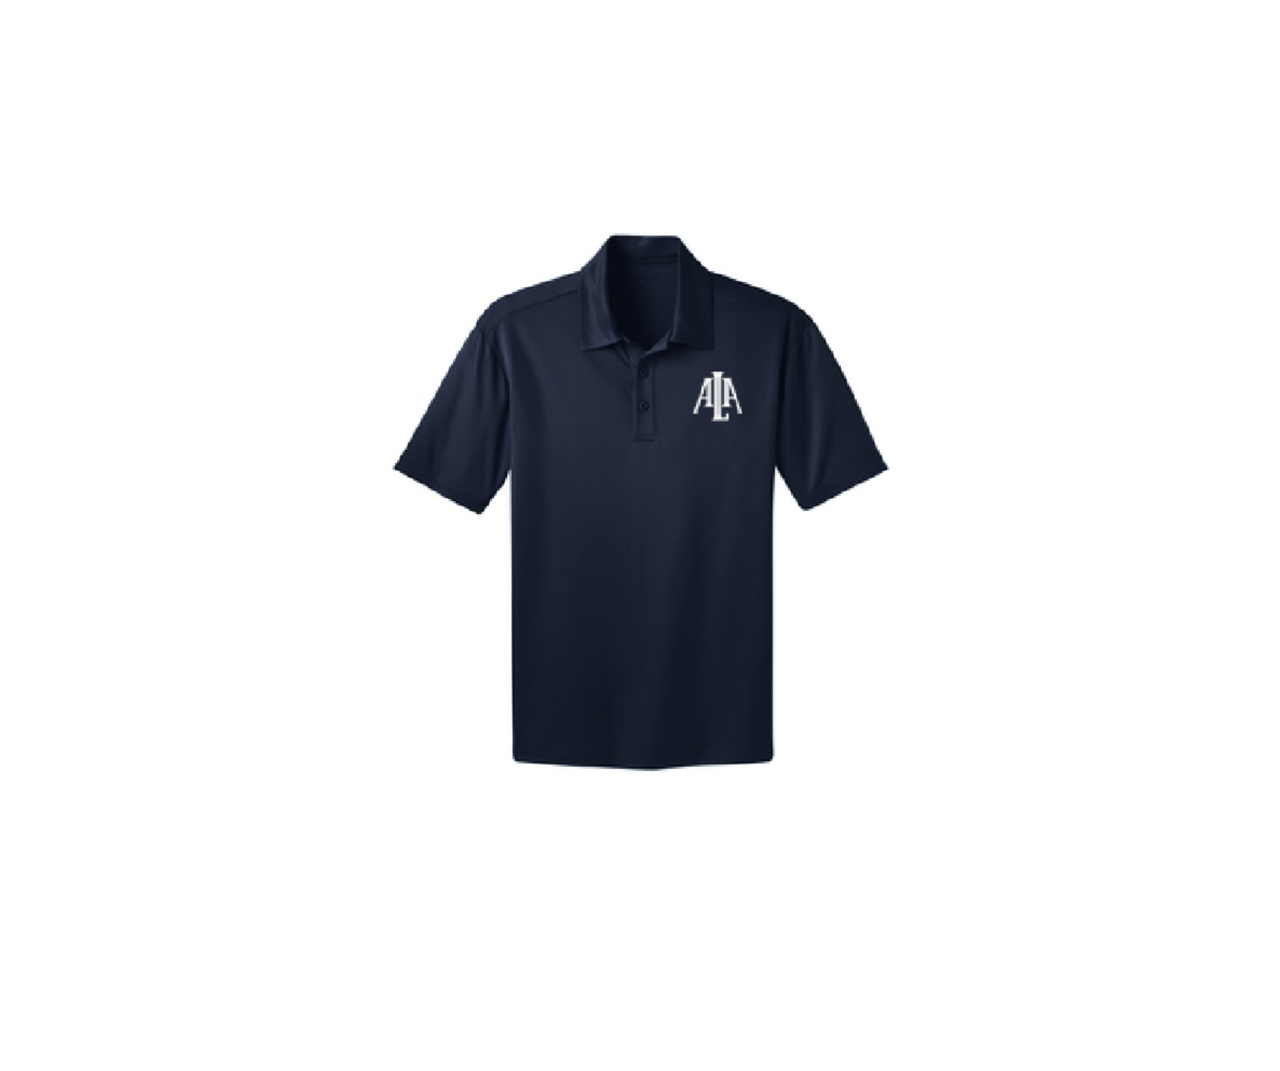 Adult ALA Dry Fit Polo- (4) Colors